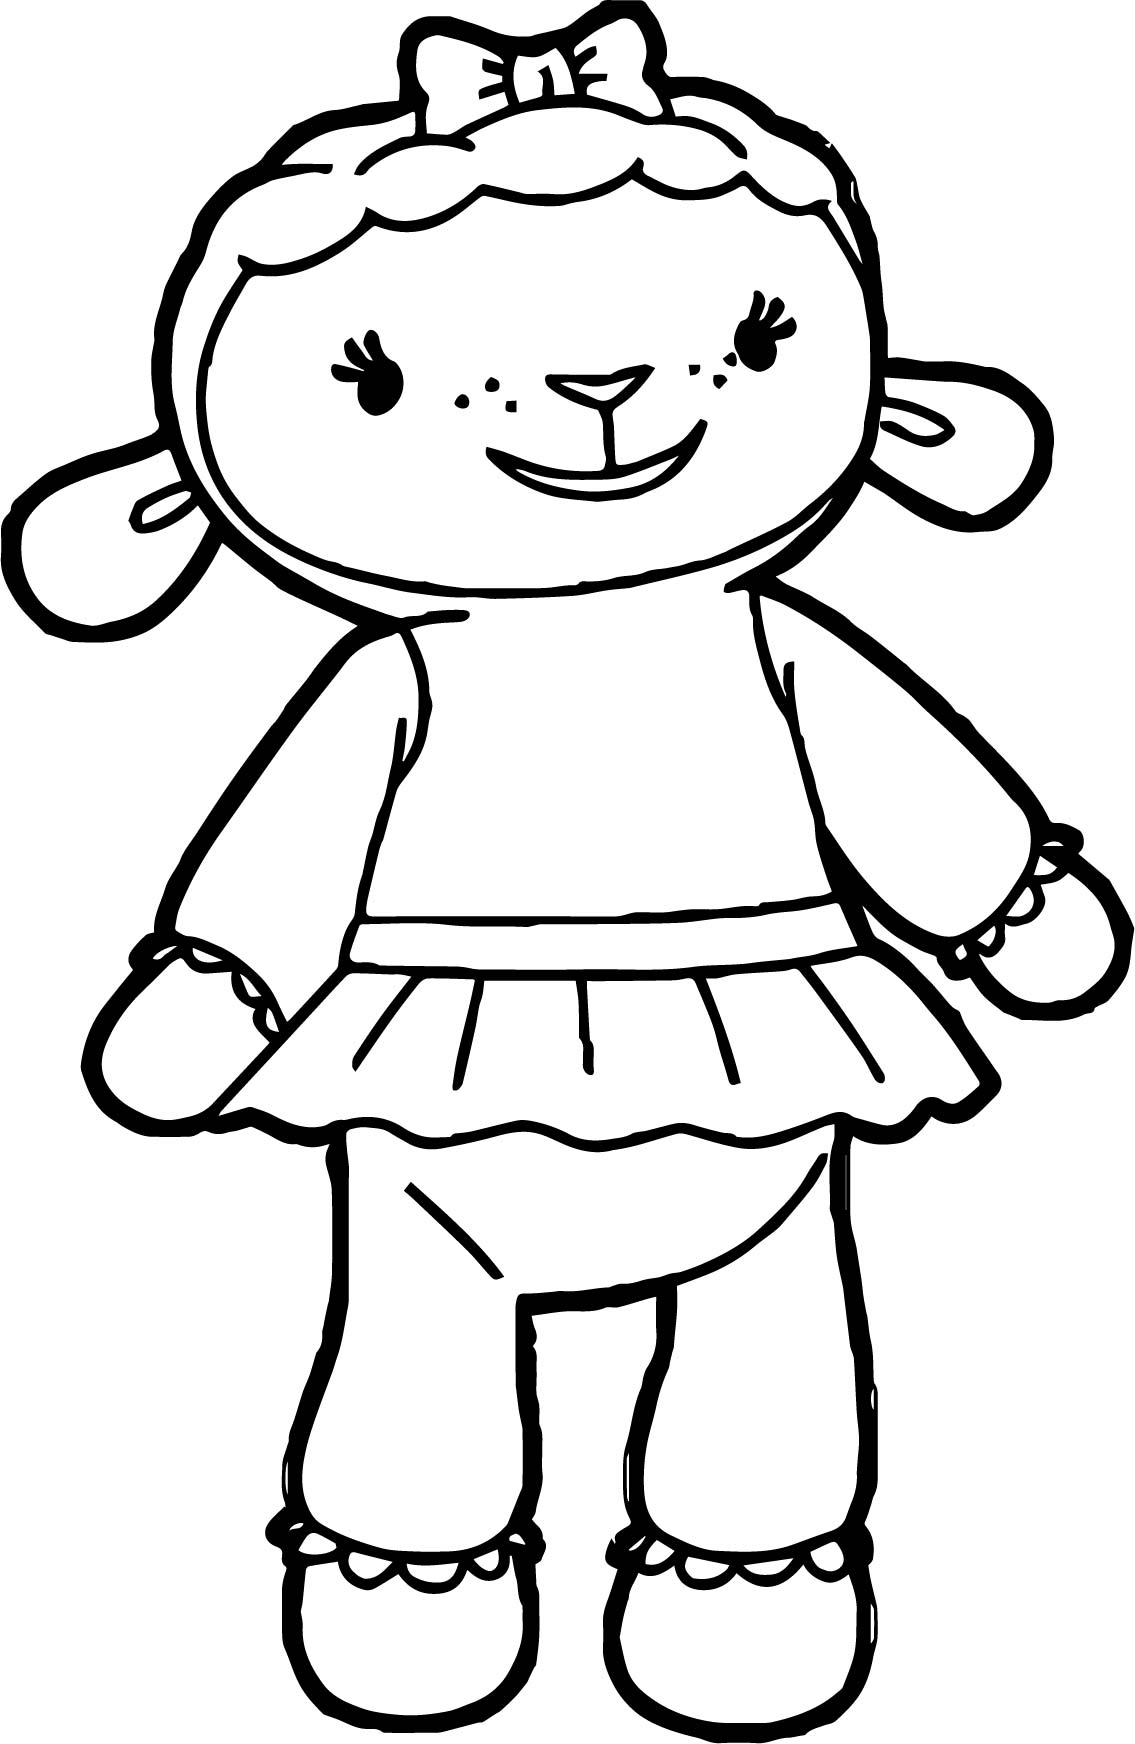 lambie 3 coloring page